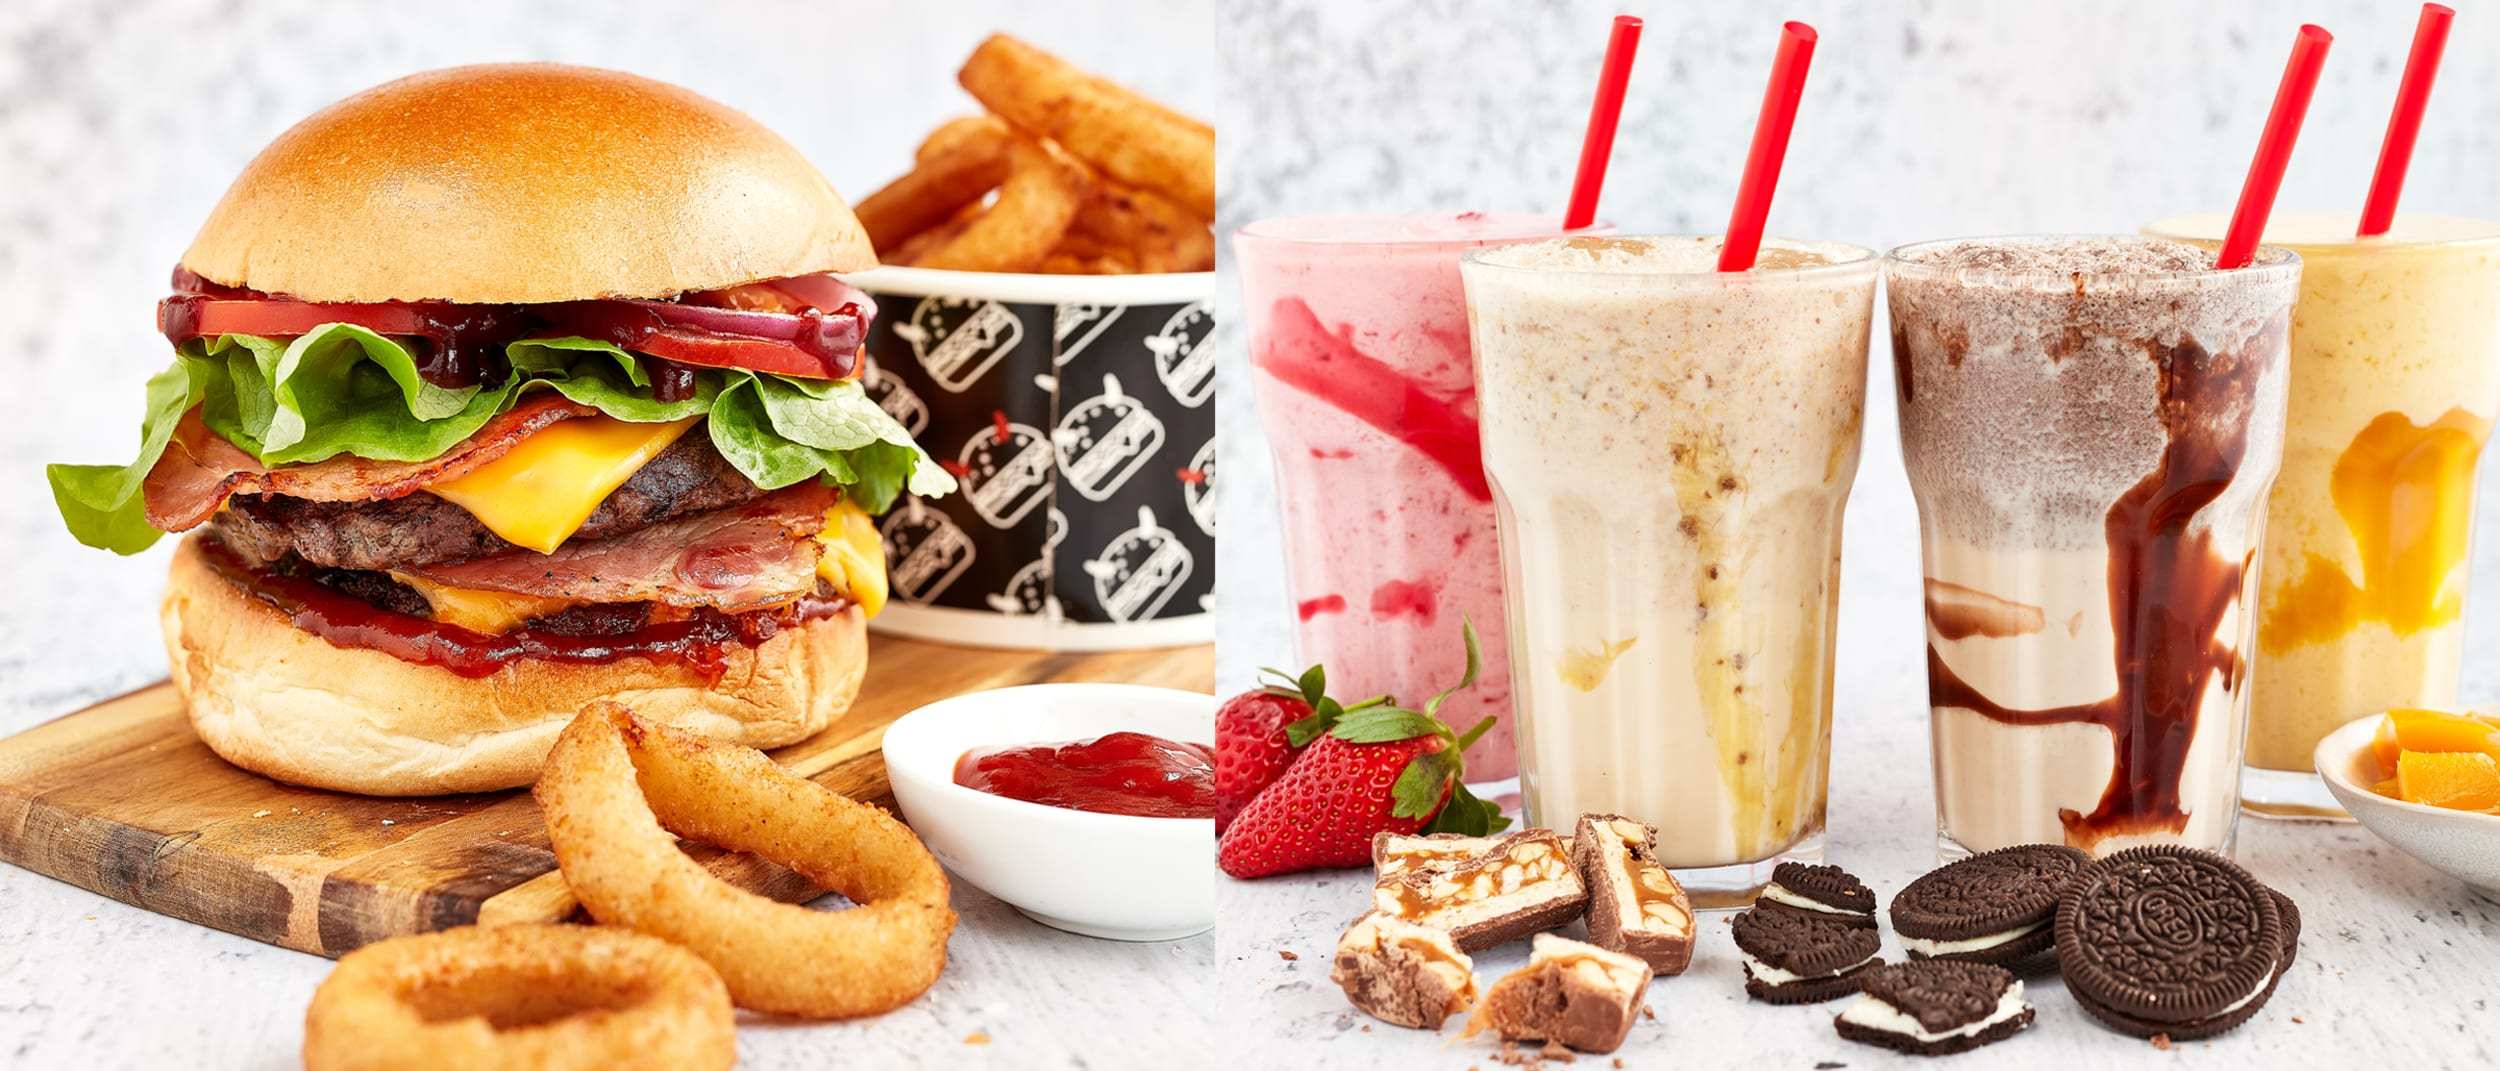 Burger and milkshakes